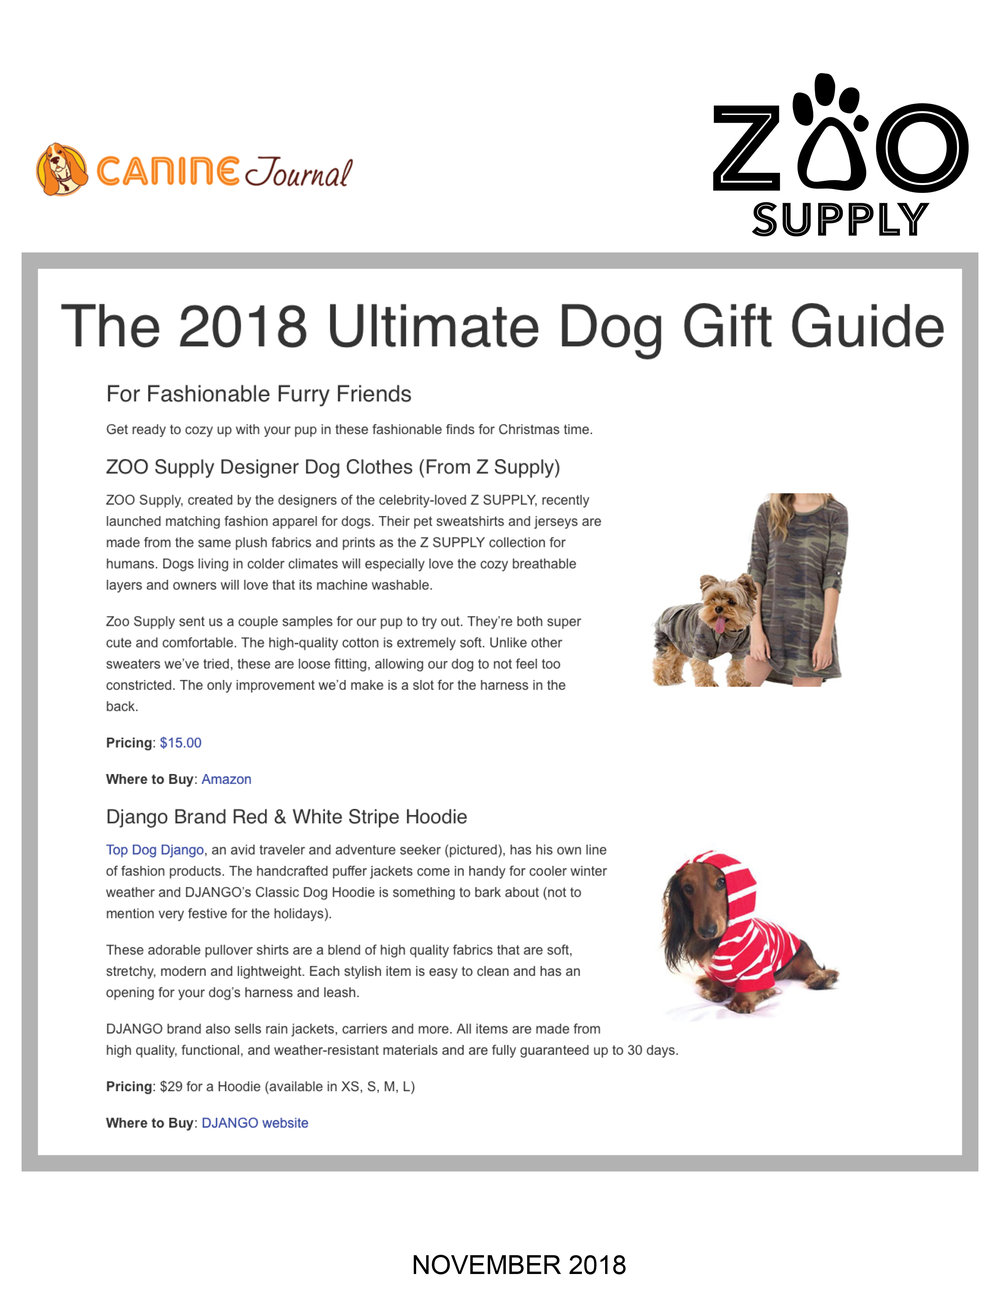 ZooSupply_CanineJournal_November2018.jpg